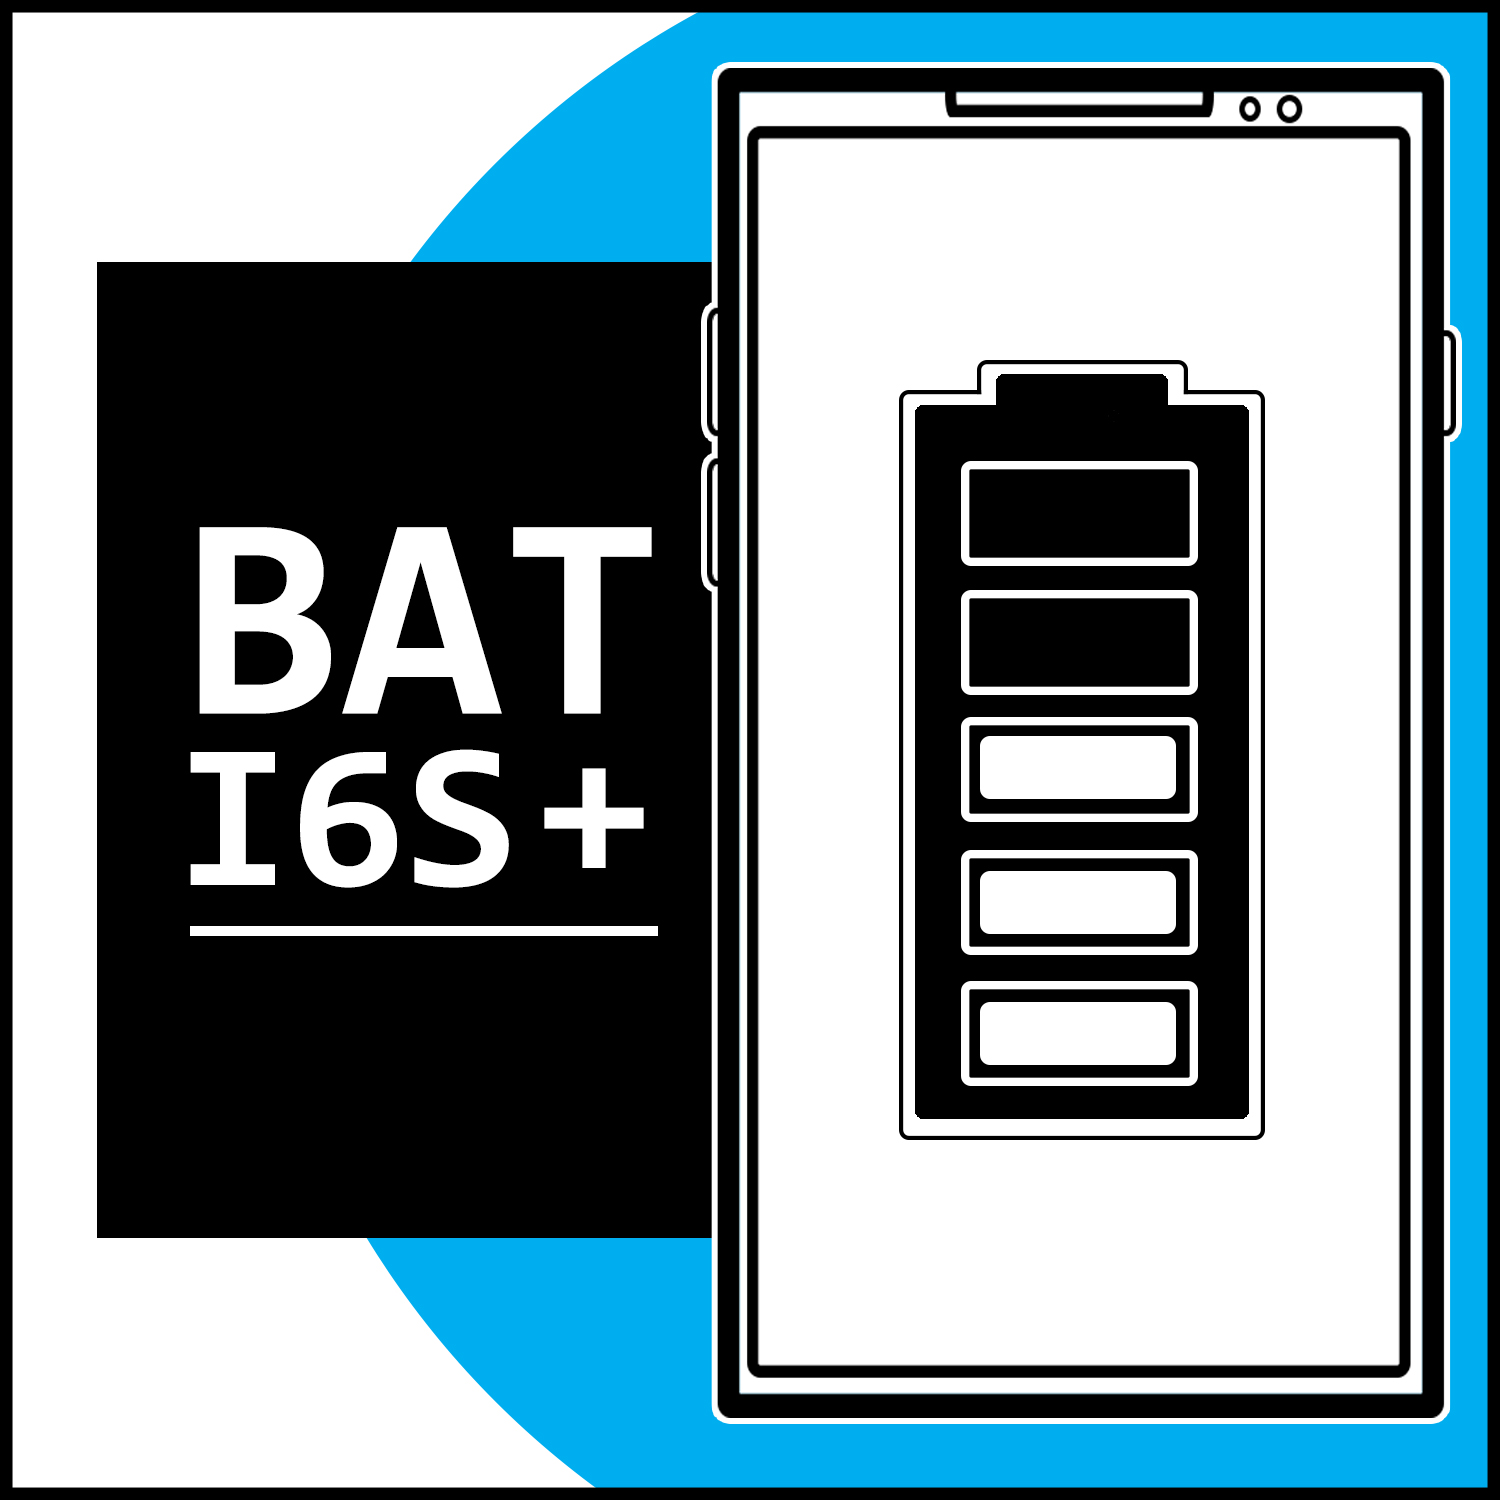 i6s plus BAT logo.jpg